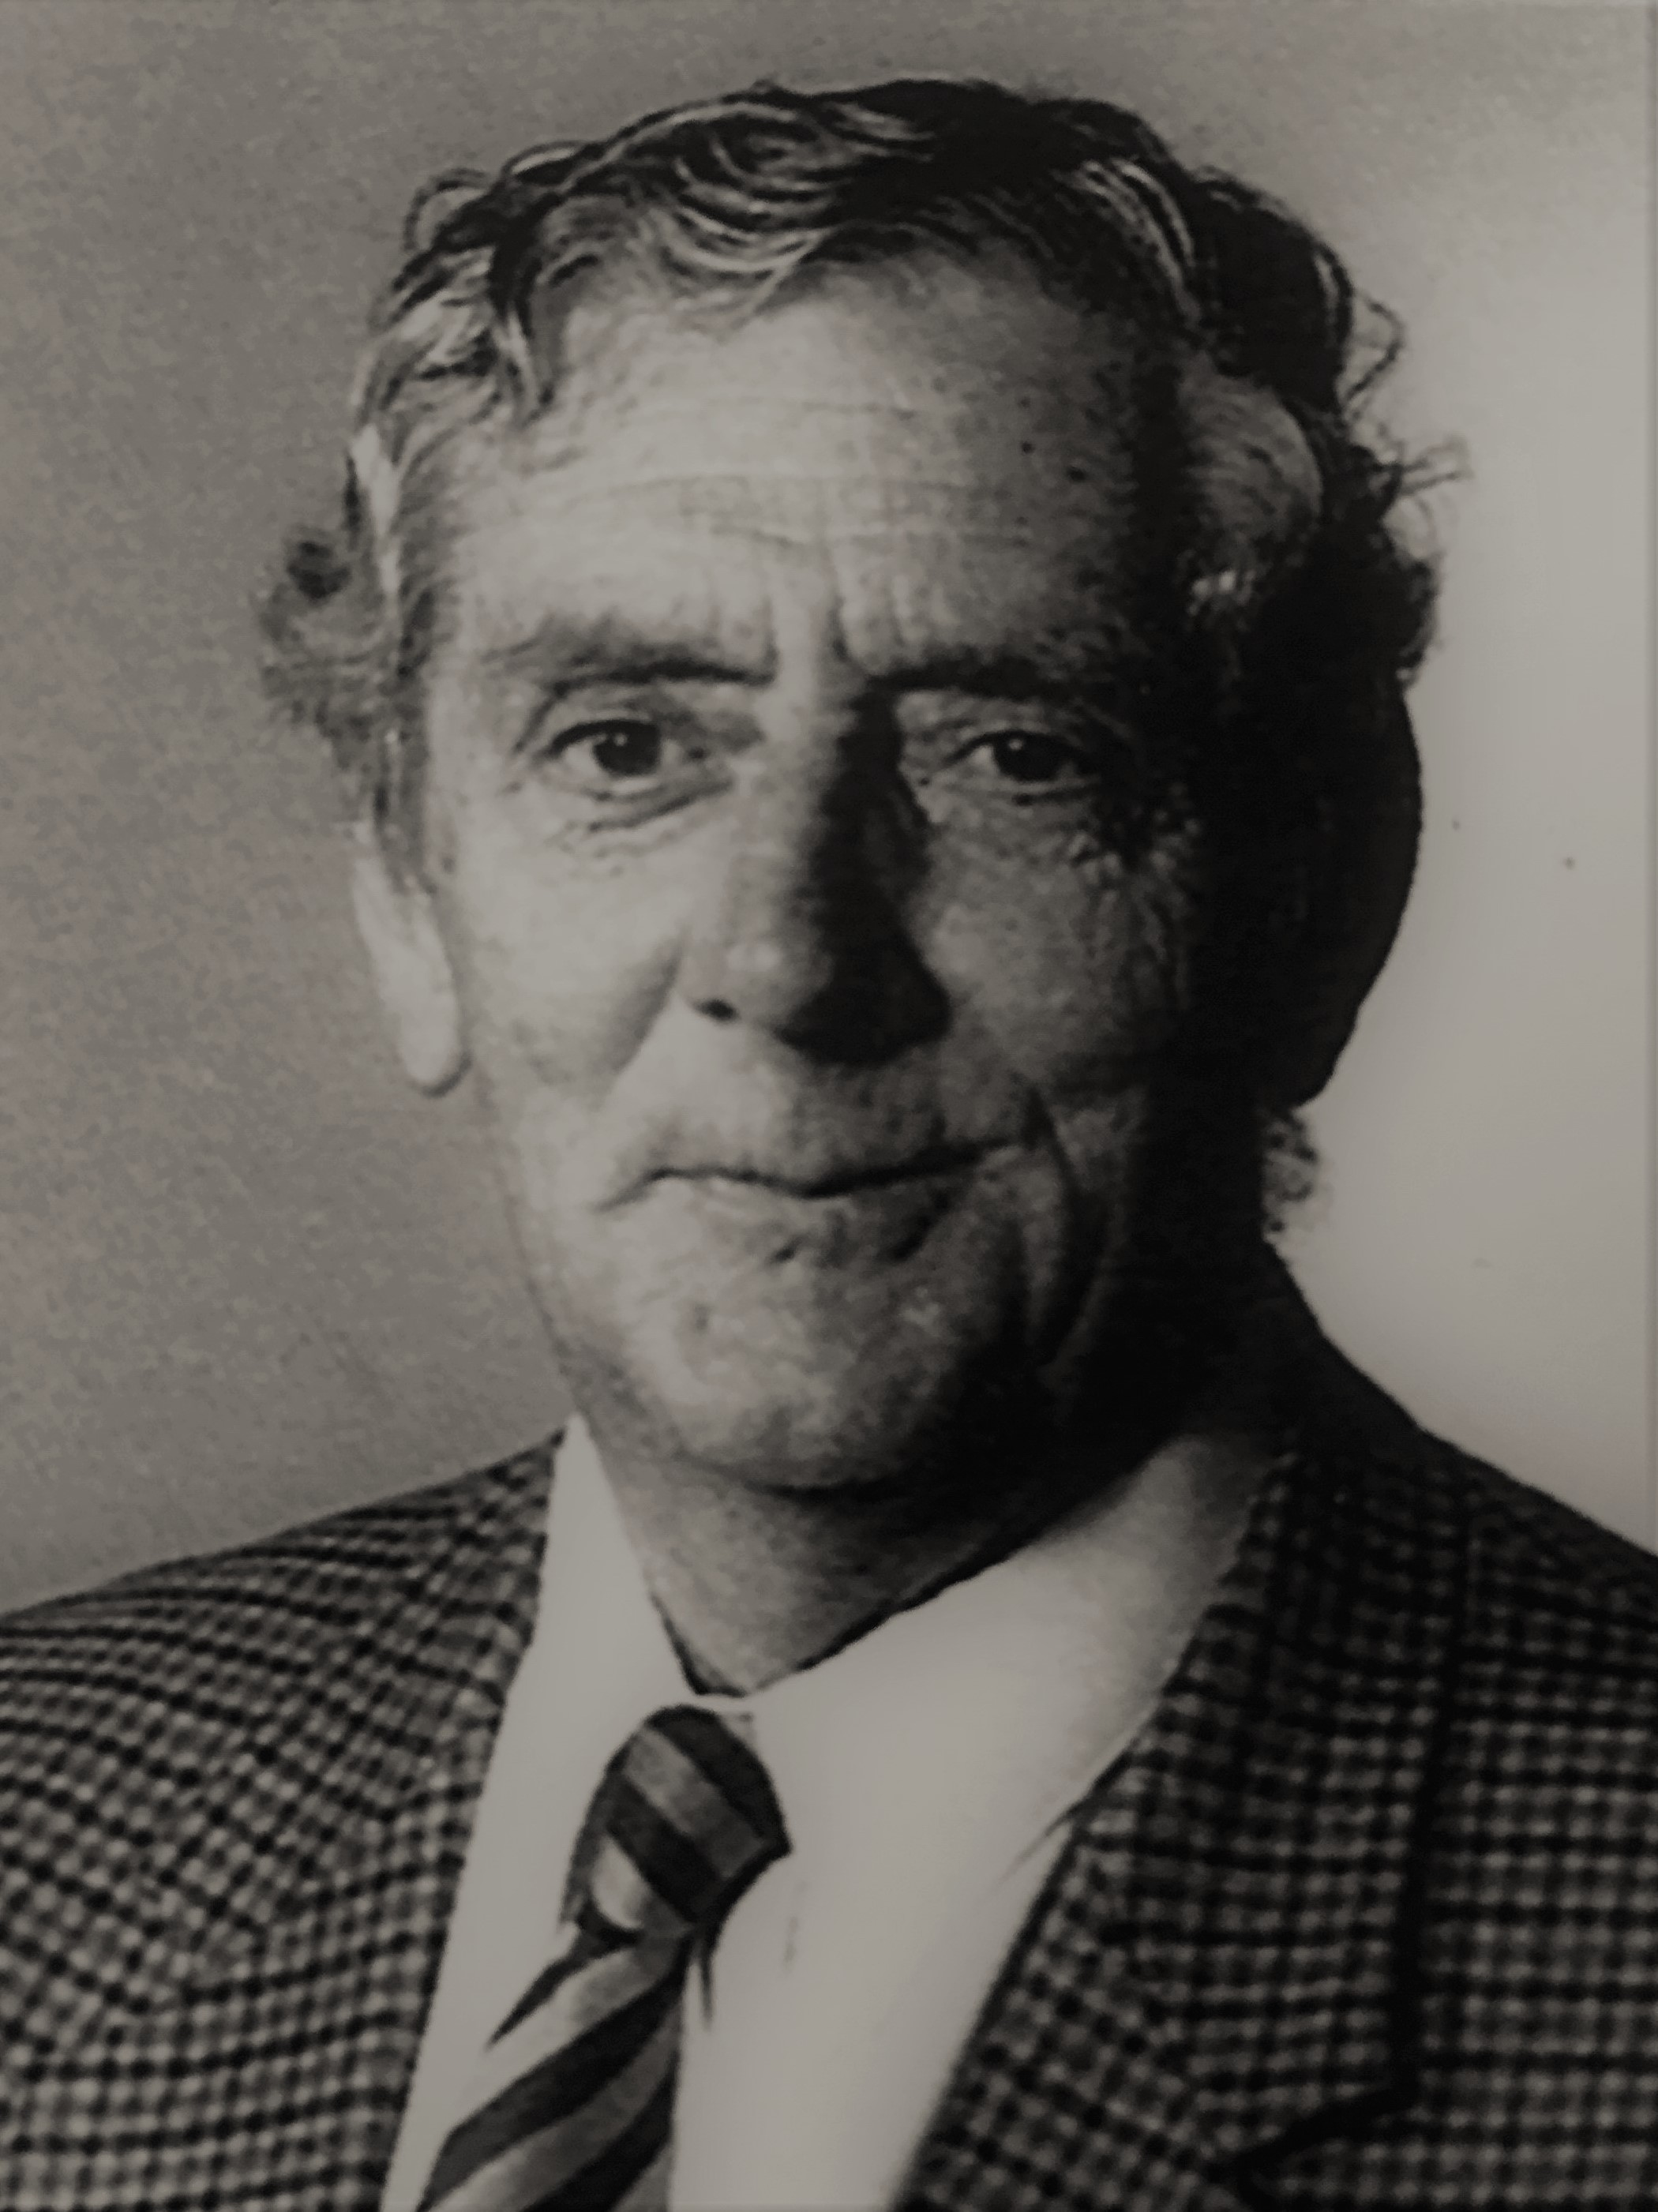 Ian O'Donnell